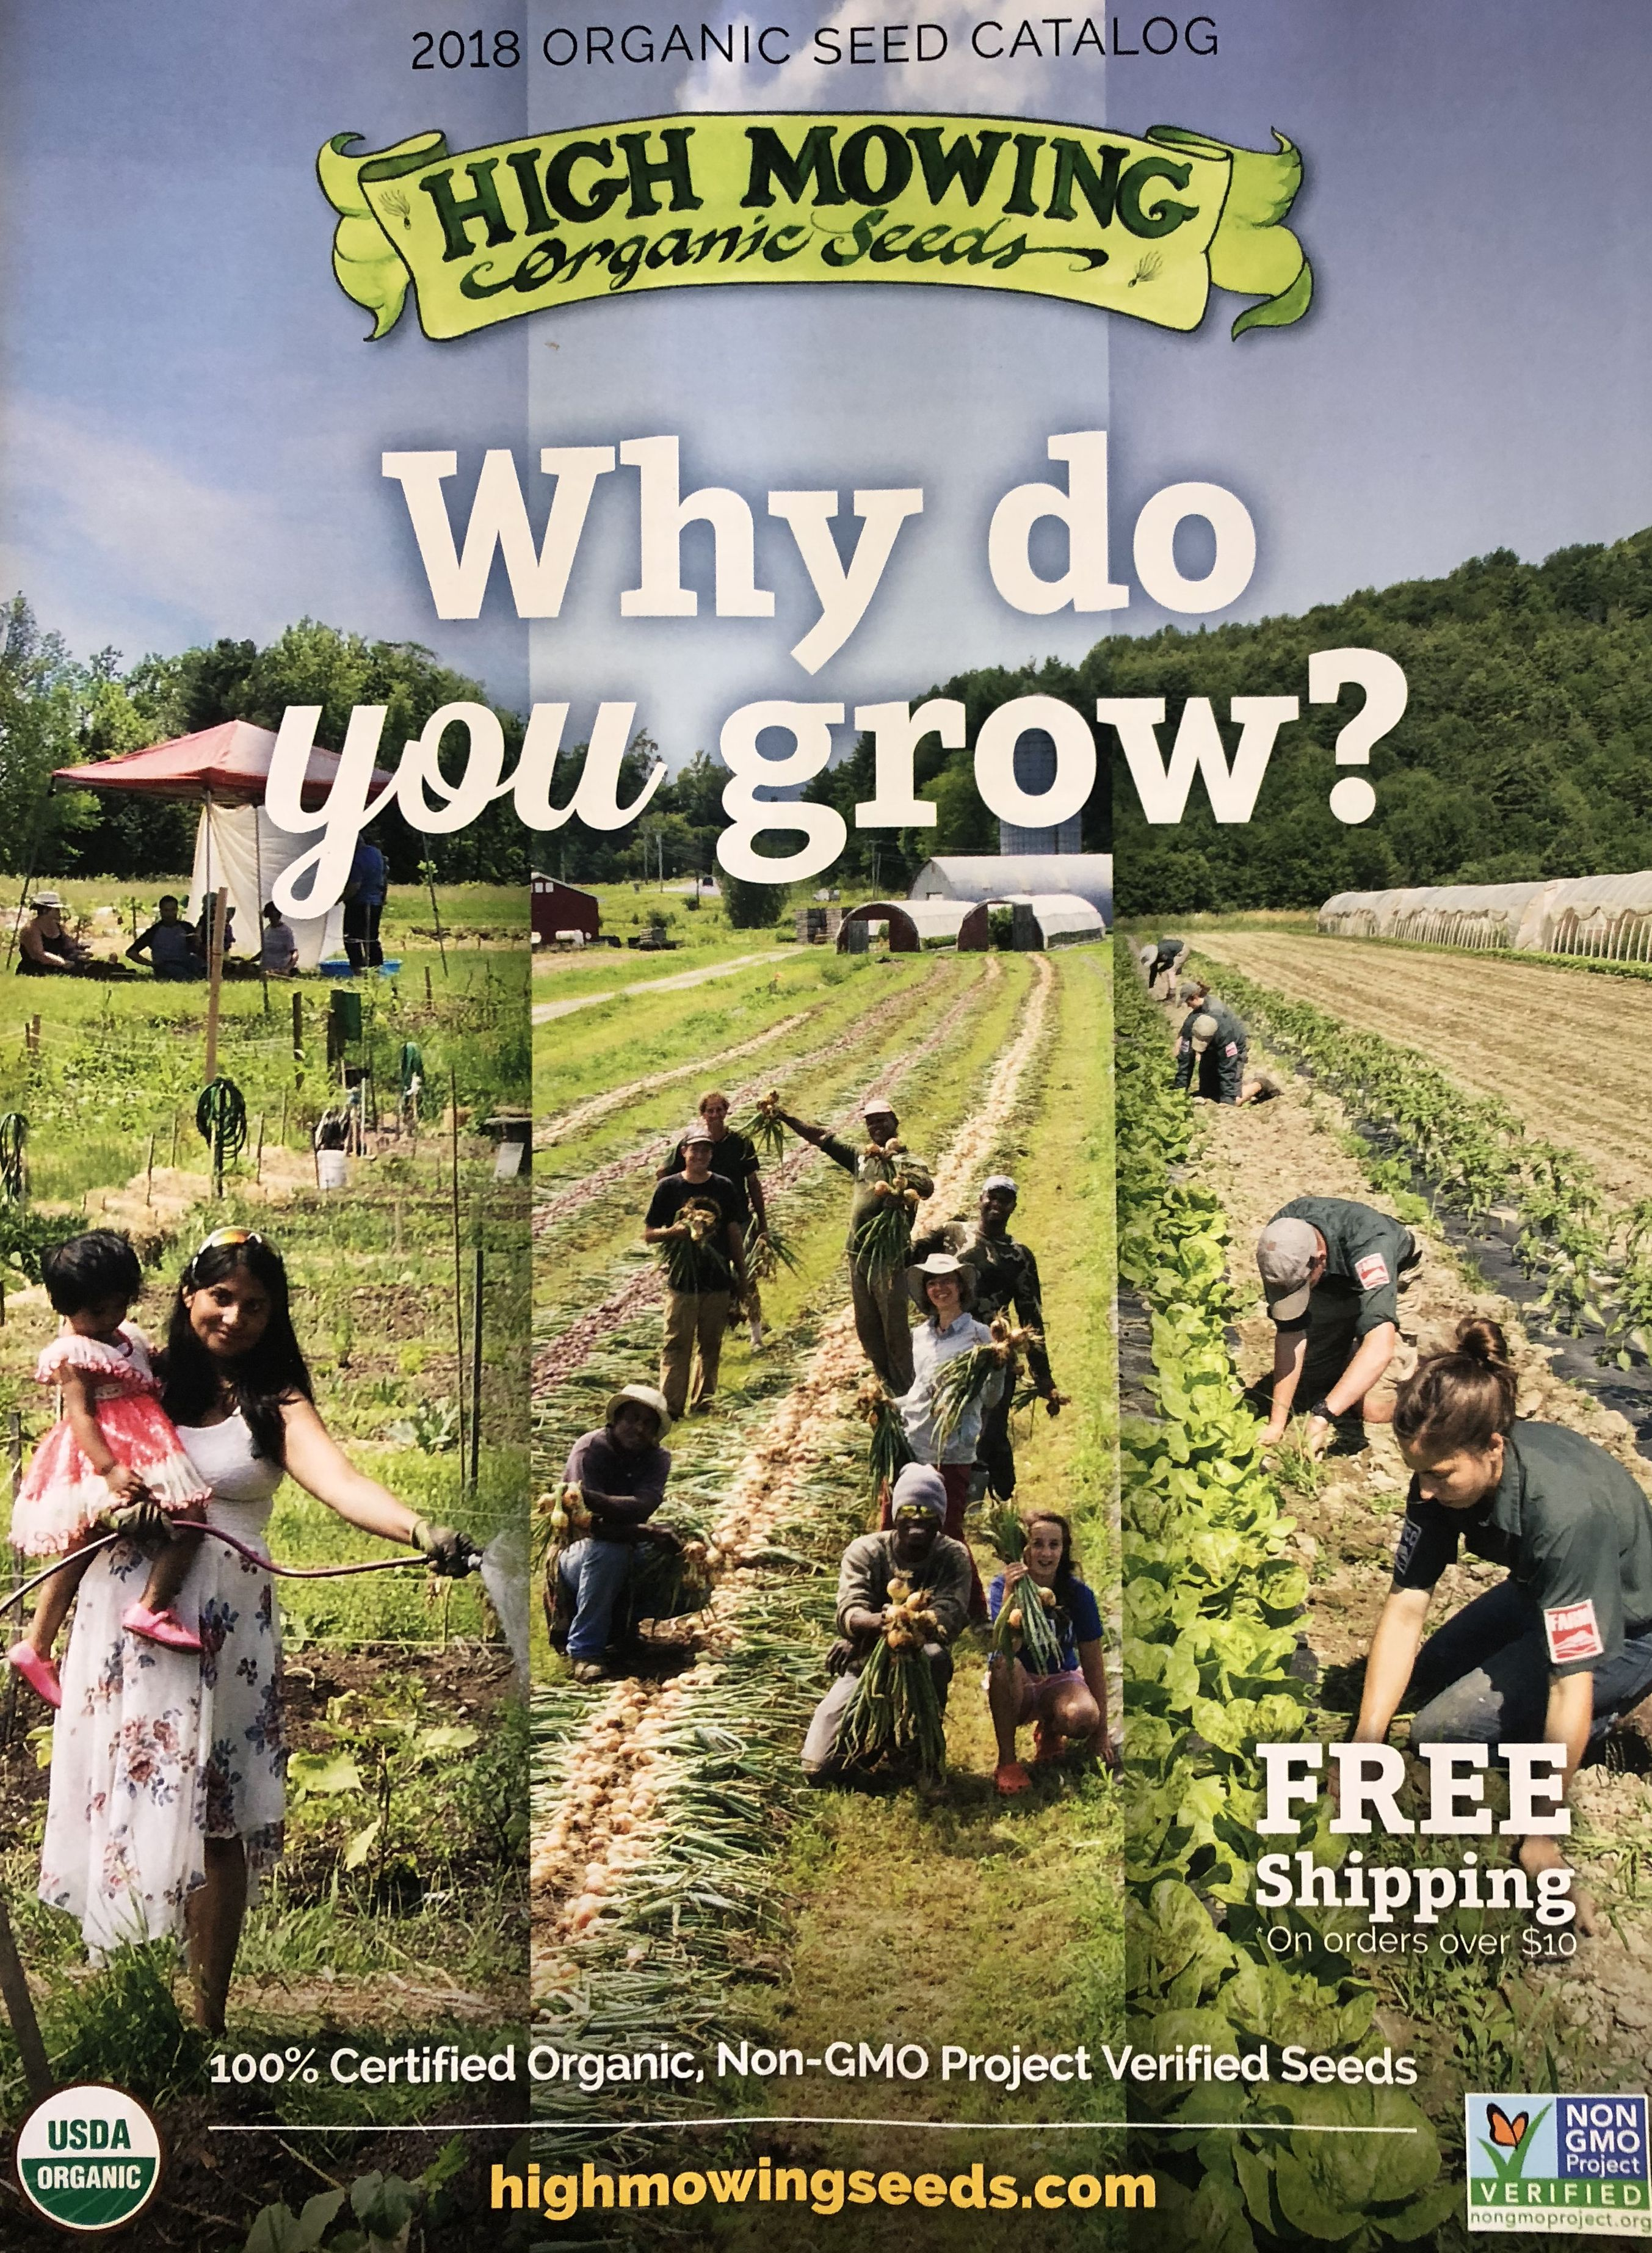 The 2018 High Mowing Organic Seeds catalog